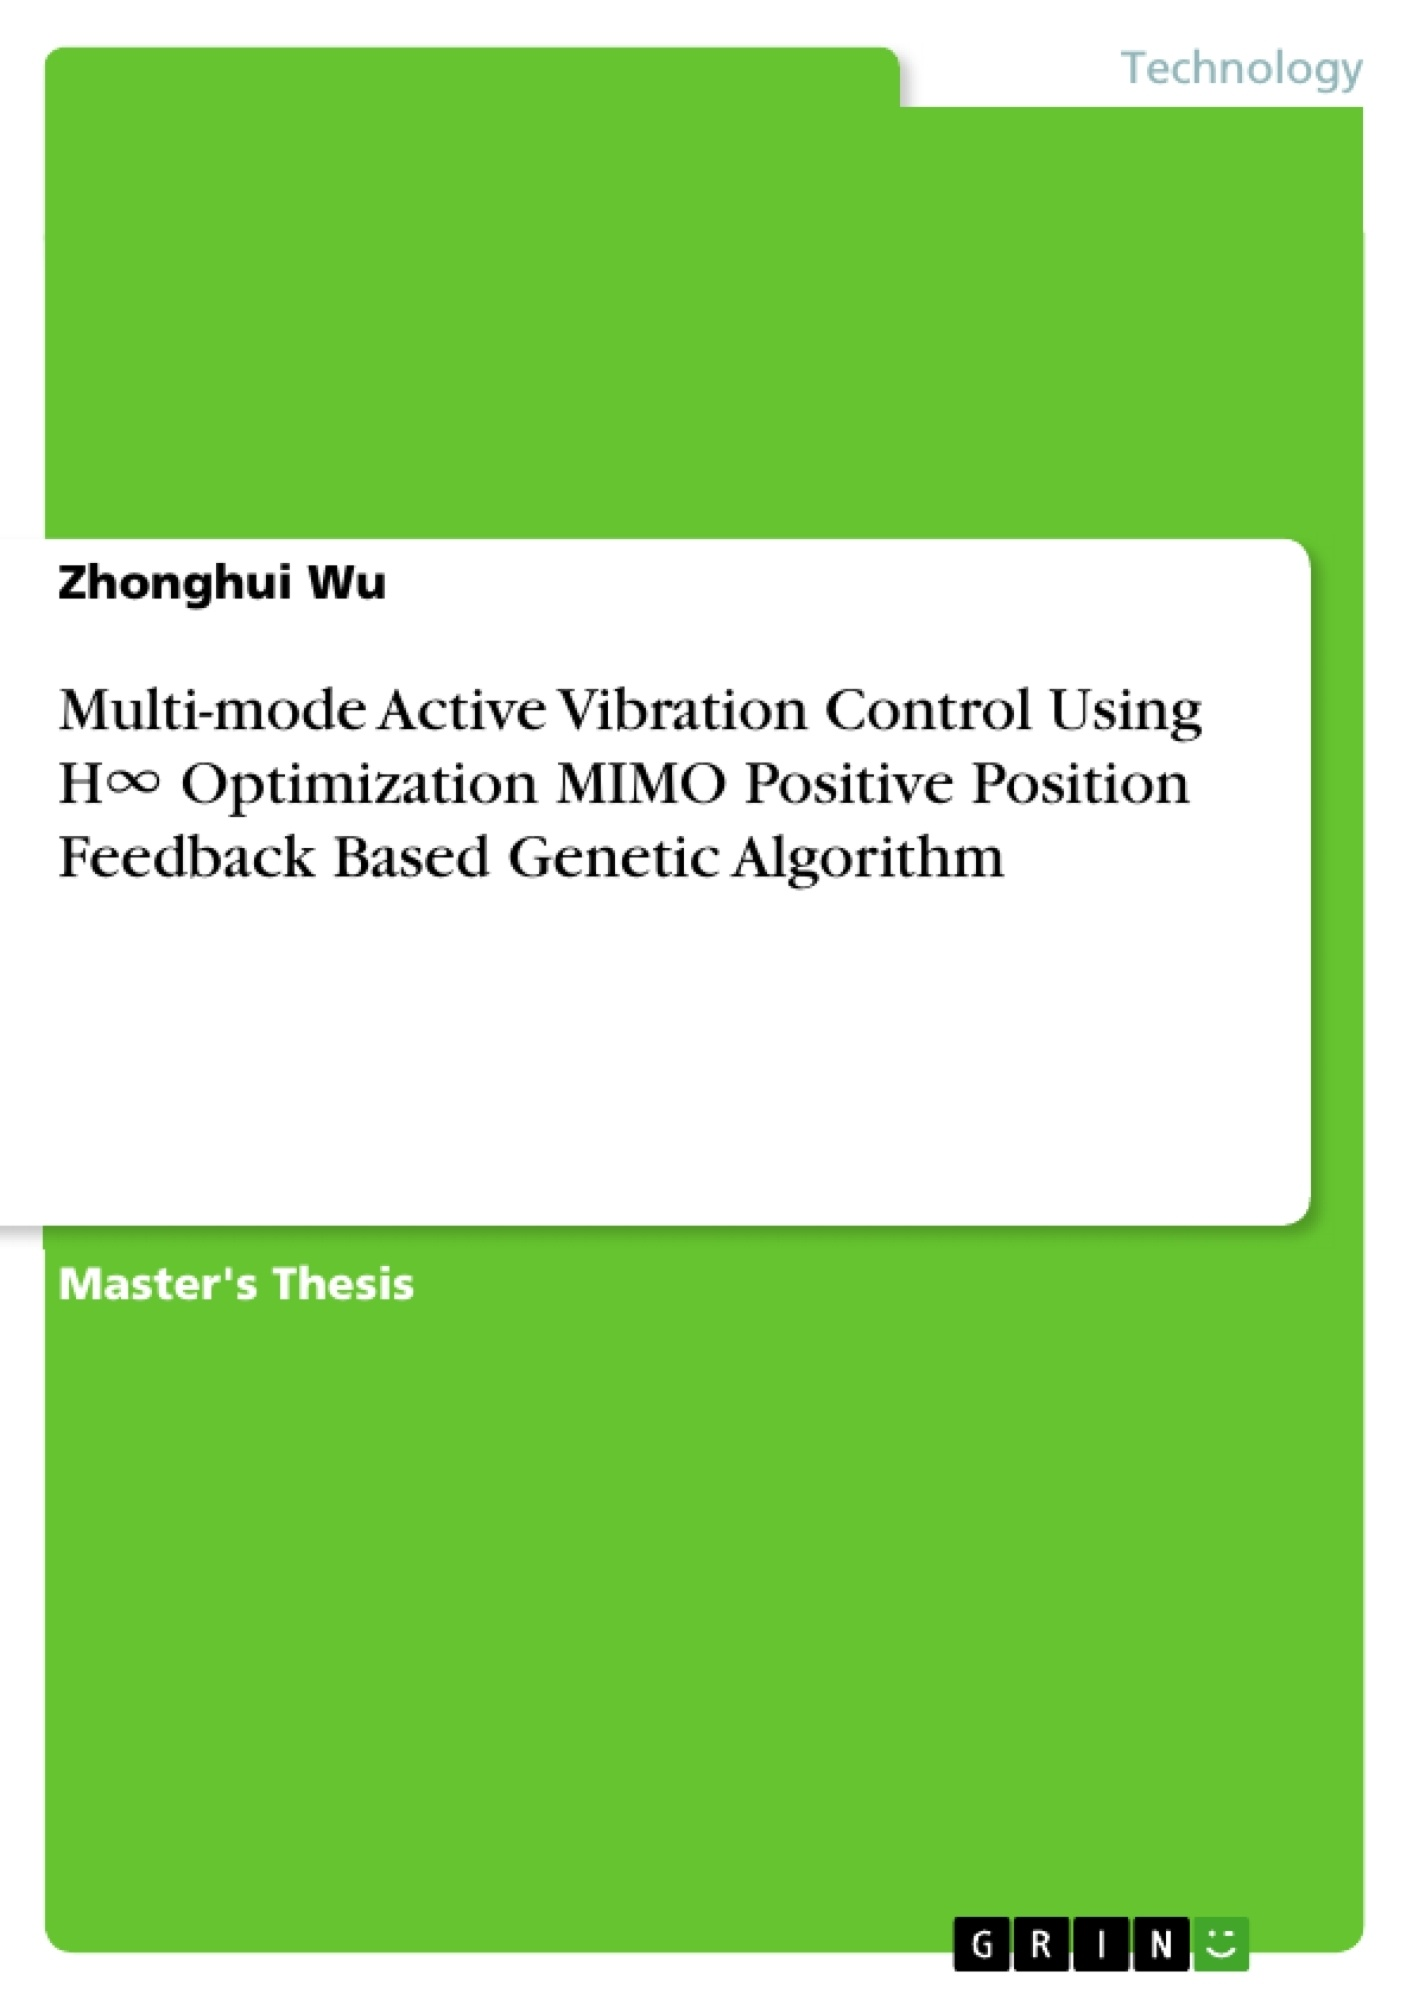 Title: Multi-mode Active Vibration Control Using H∞ Optimization MIMO Positive Position Feedback Based Genetic Algorithm